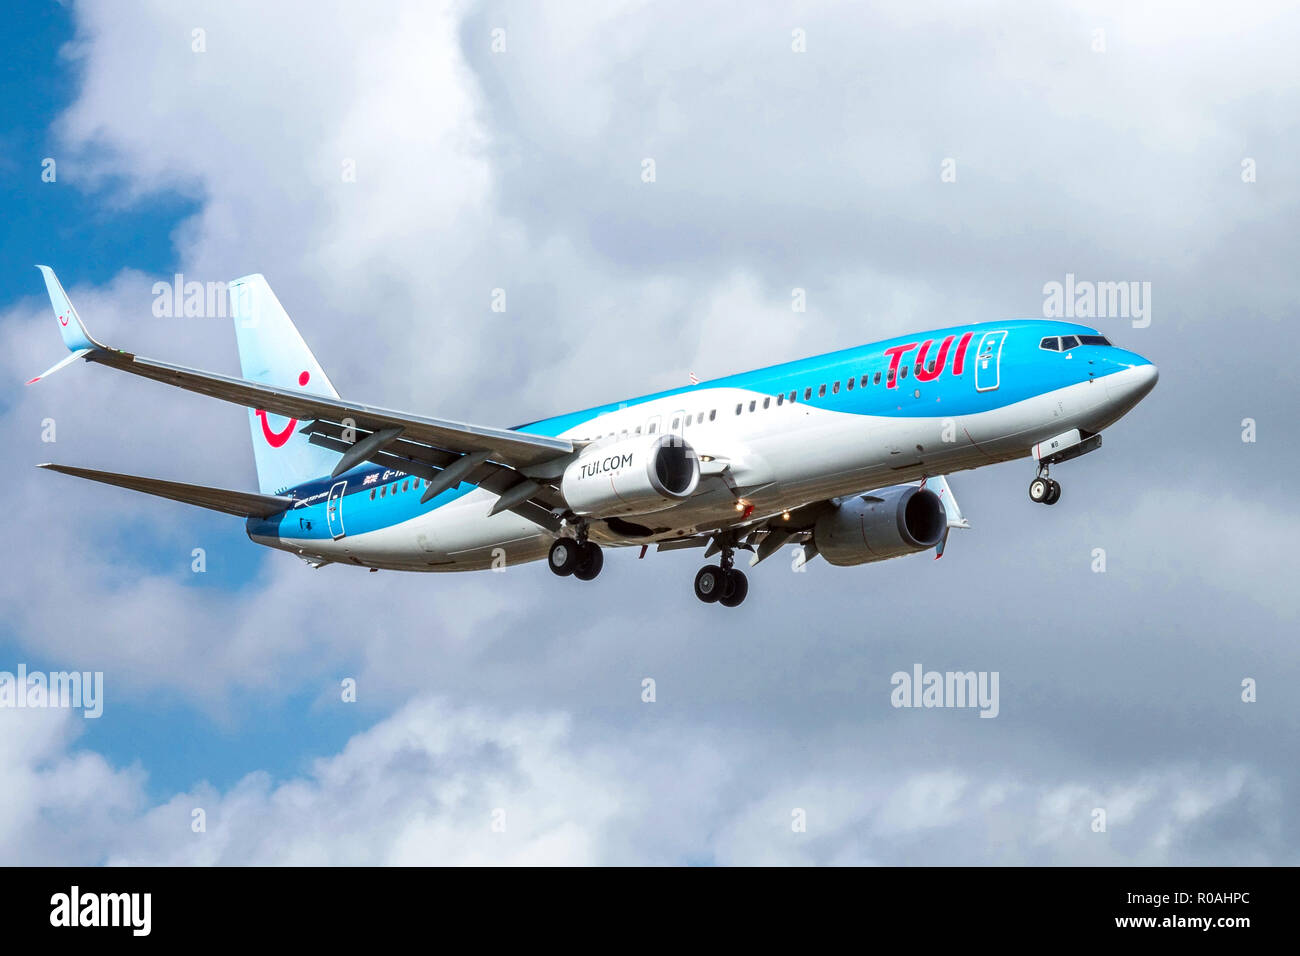 Plane Boeing 737 TUI landing, chassis of aircraft, eject - Stock Image